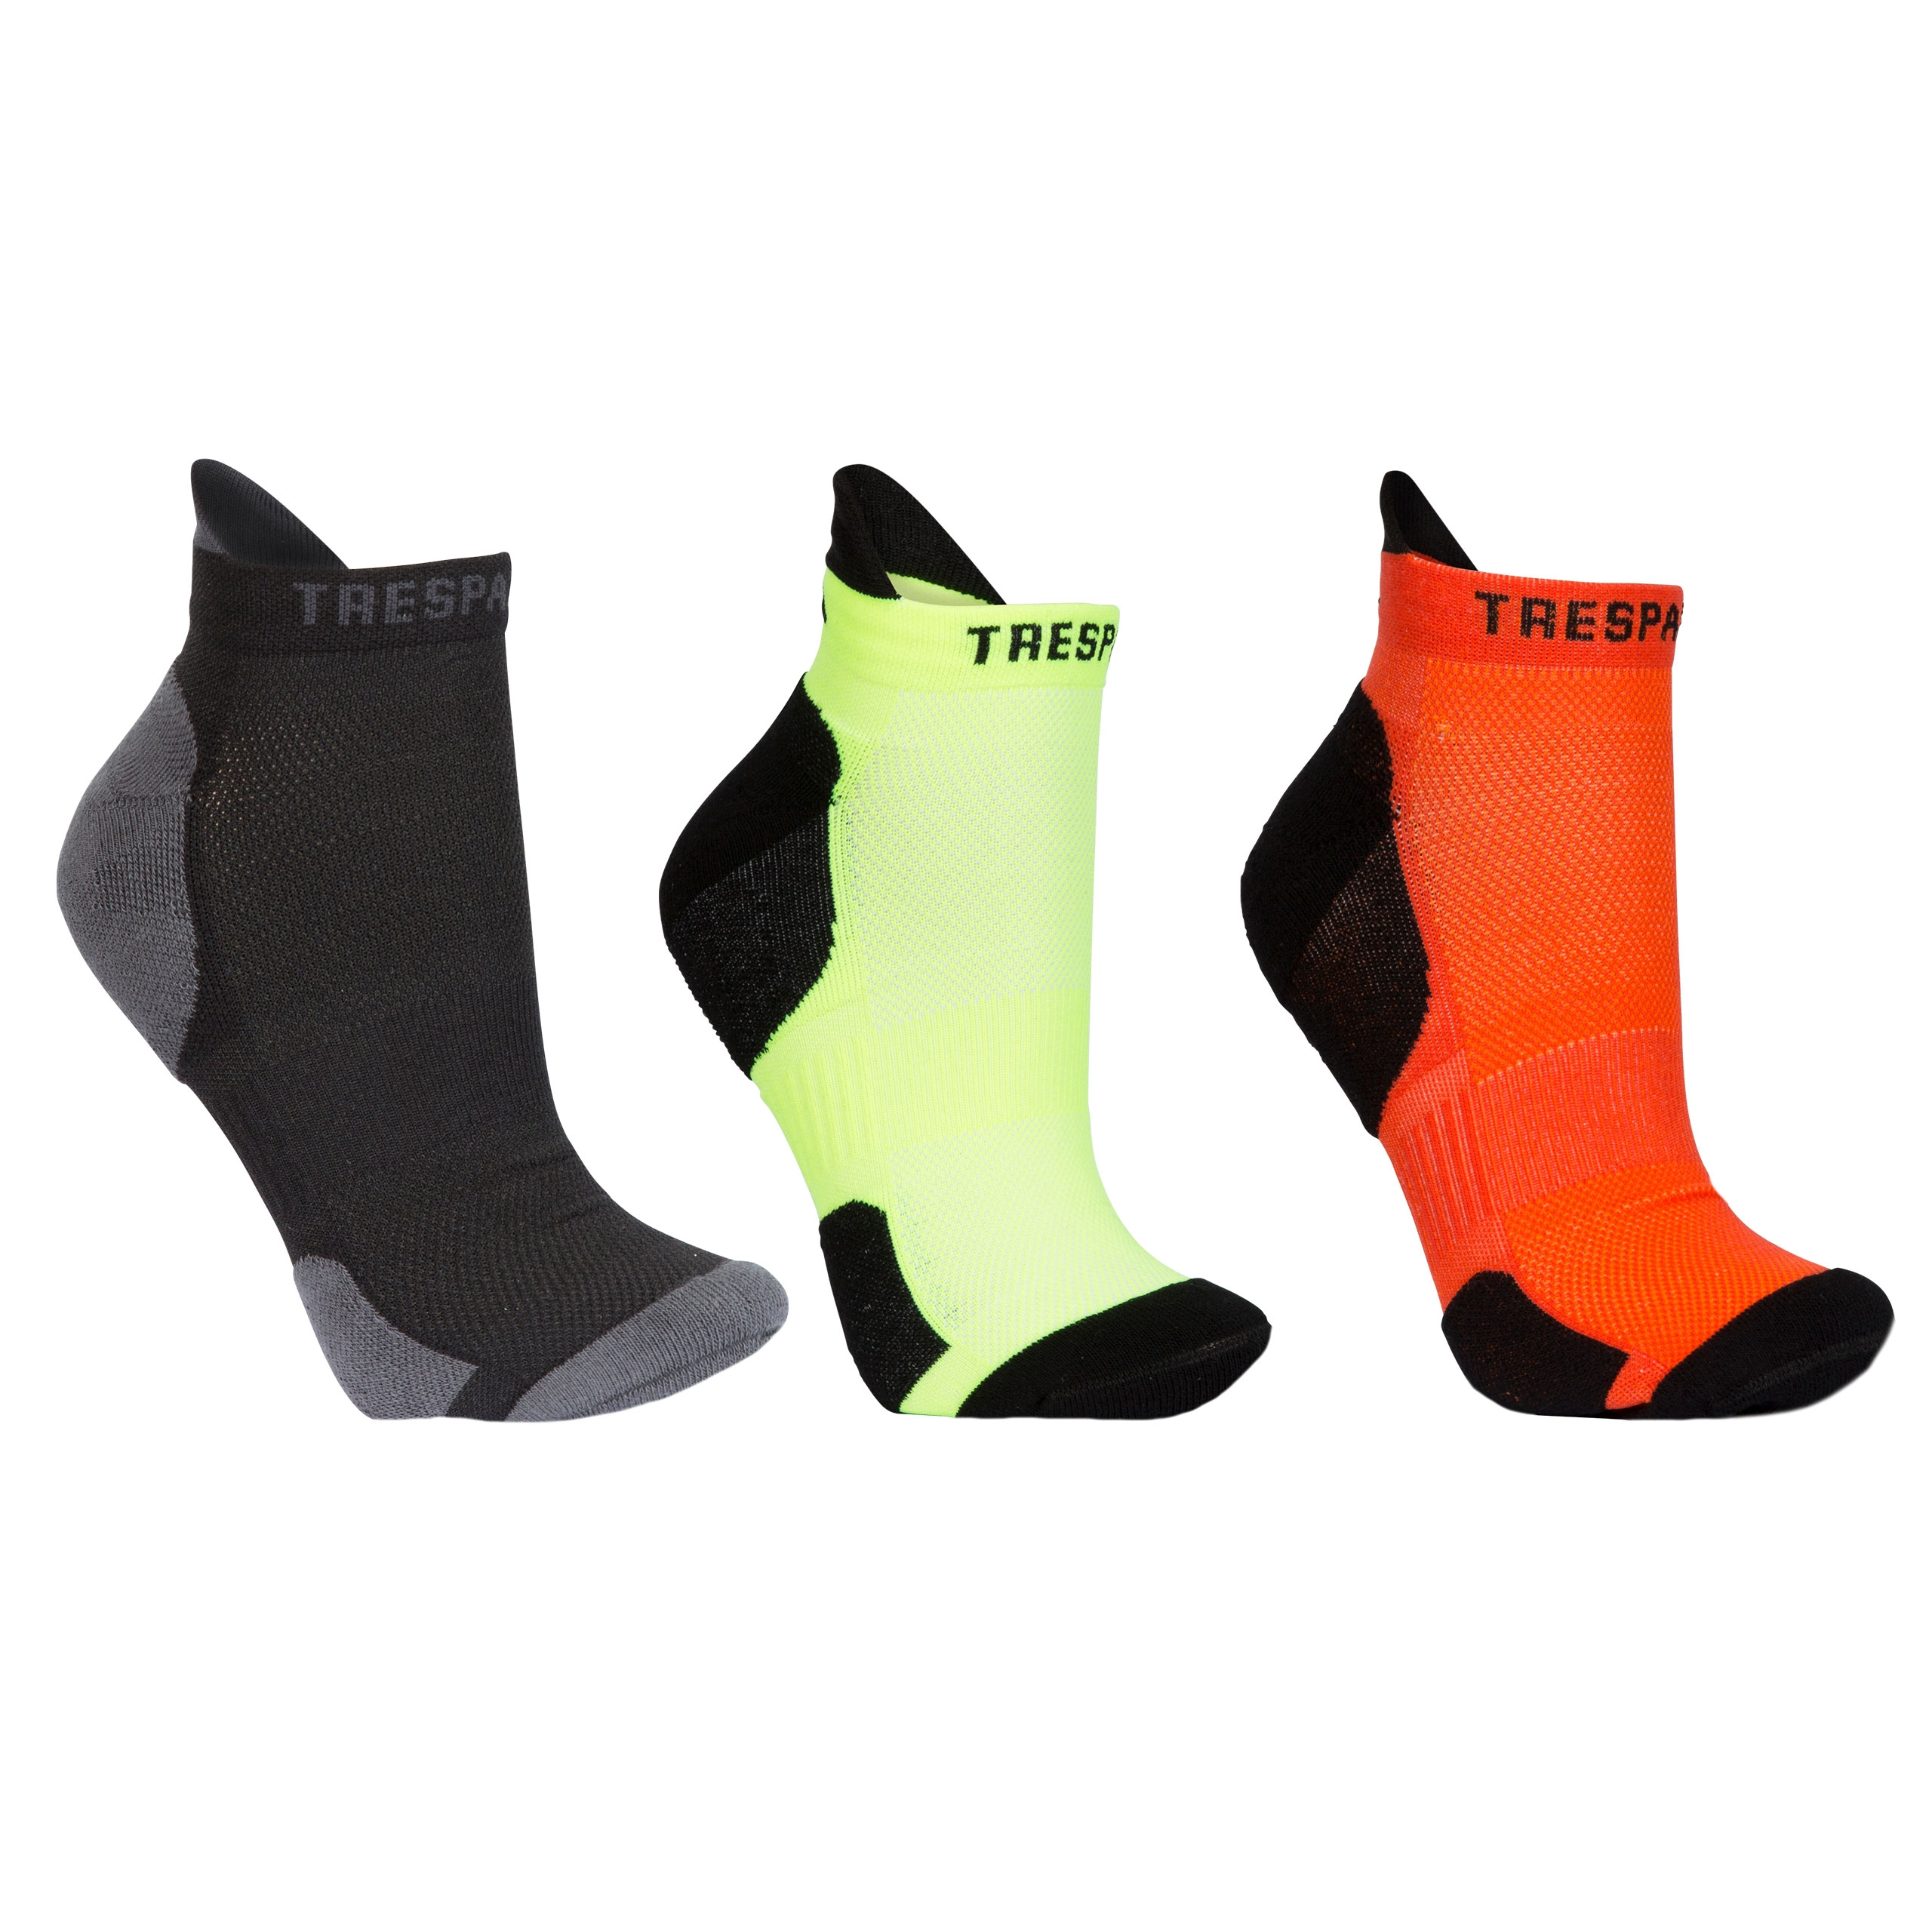 Vandring Unisex Trainer Socks - 3 Pack